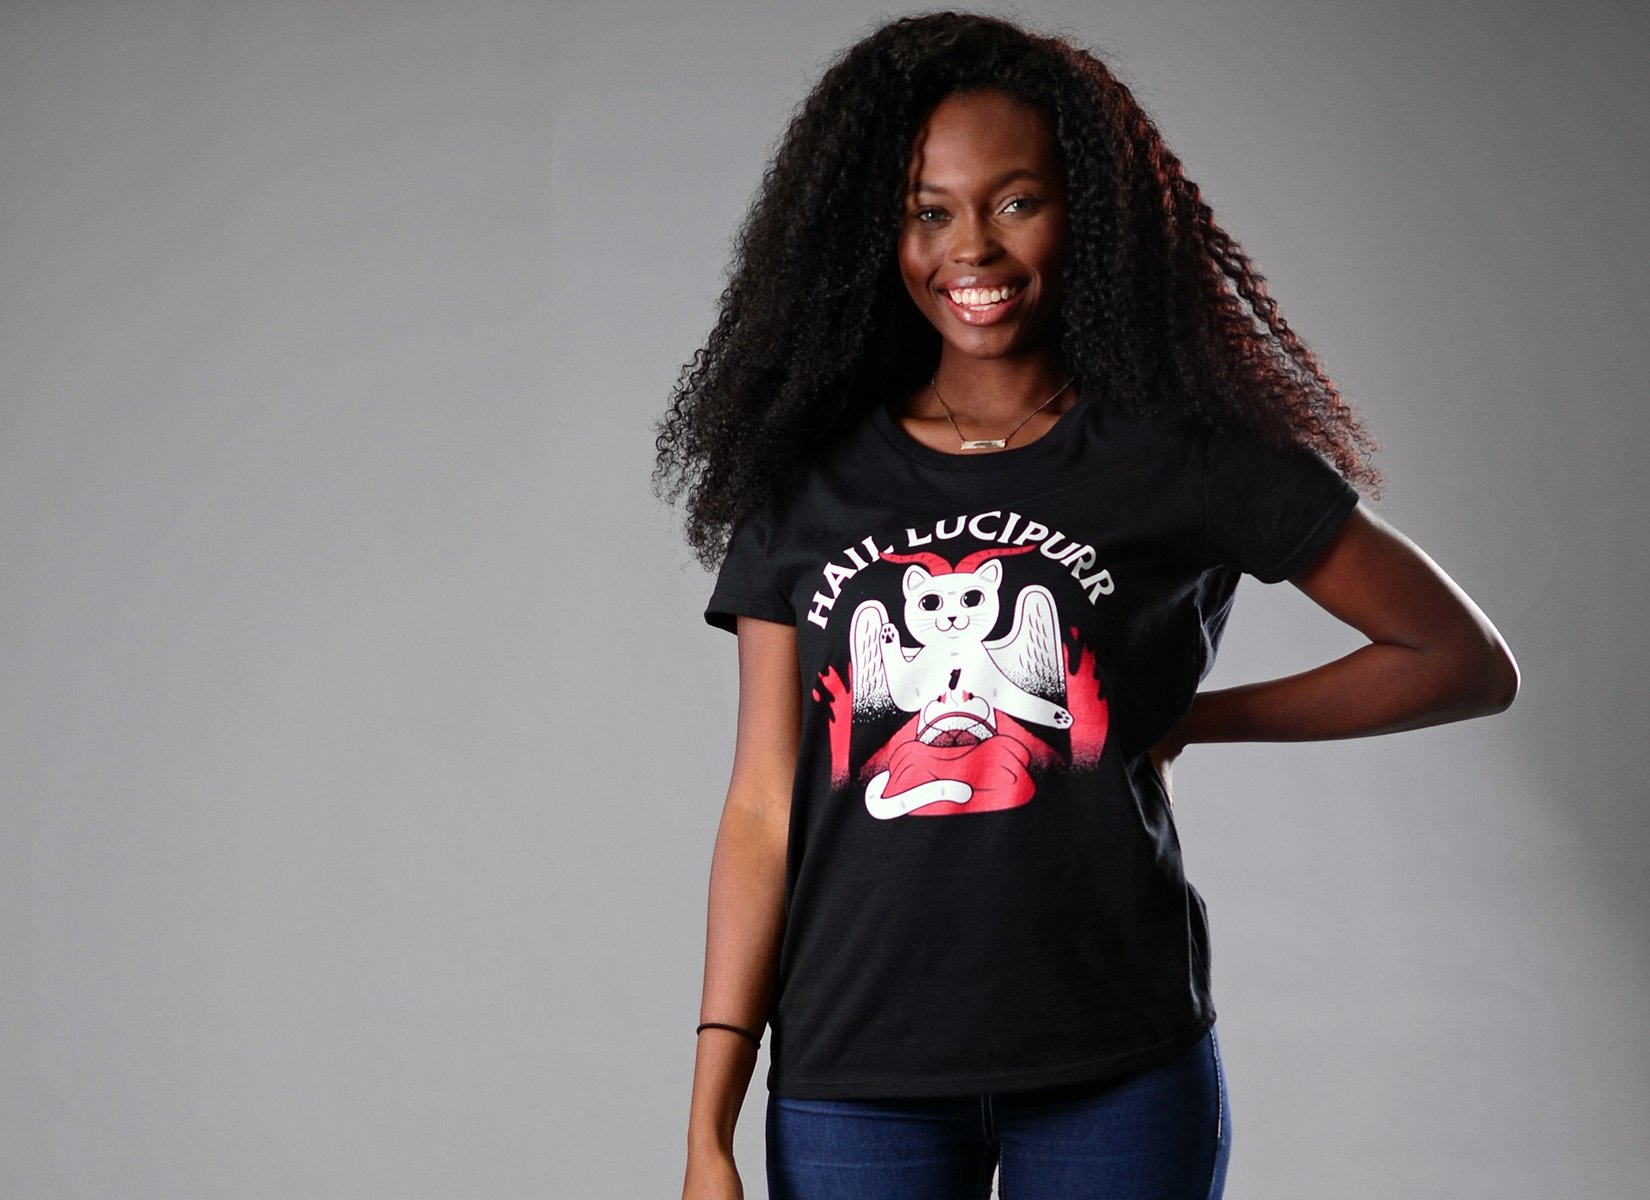 Hail Lucipurr on Womens T-Shirt